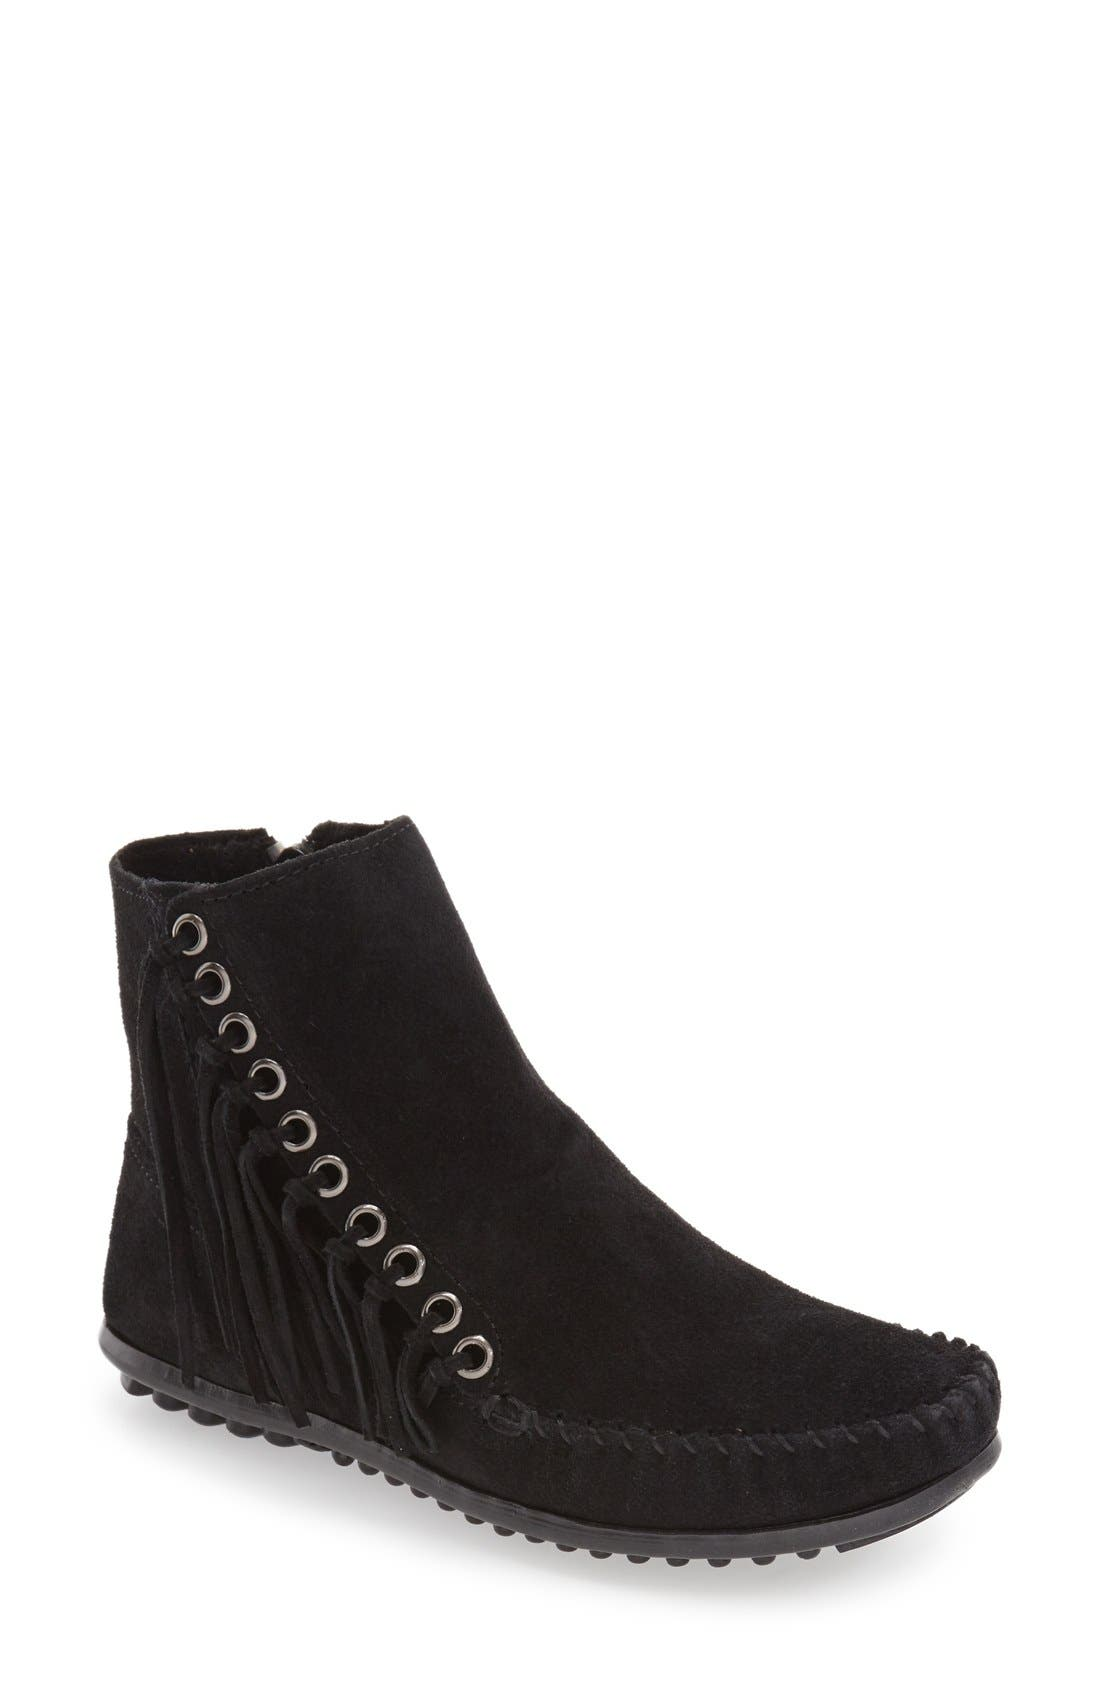 Main Image - Minnetonka 'Willow' Fringe Bootie (Women)